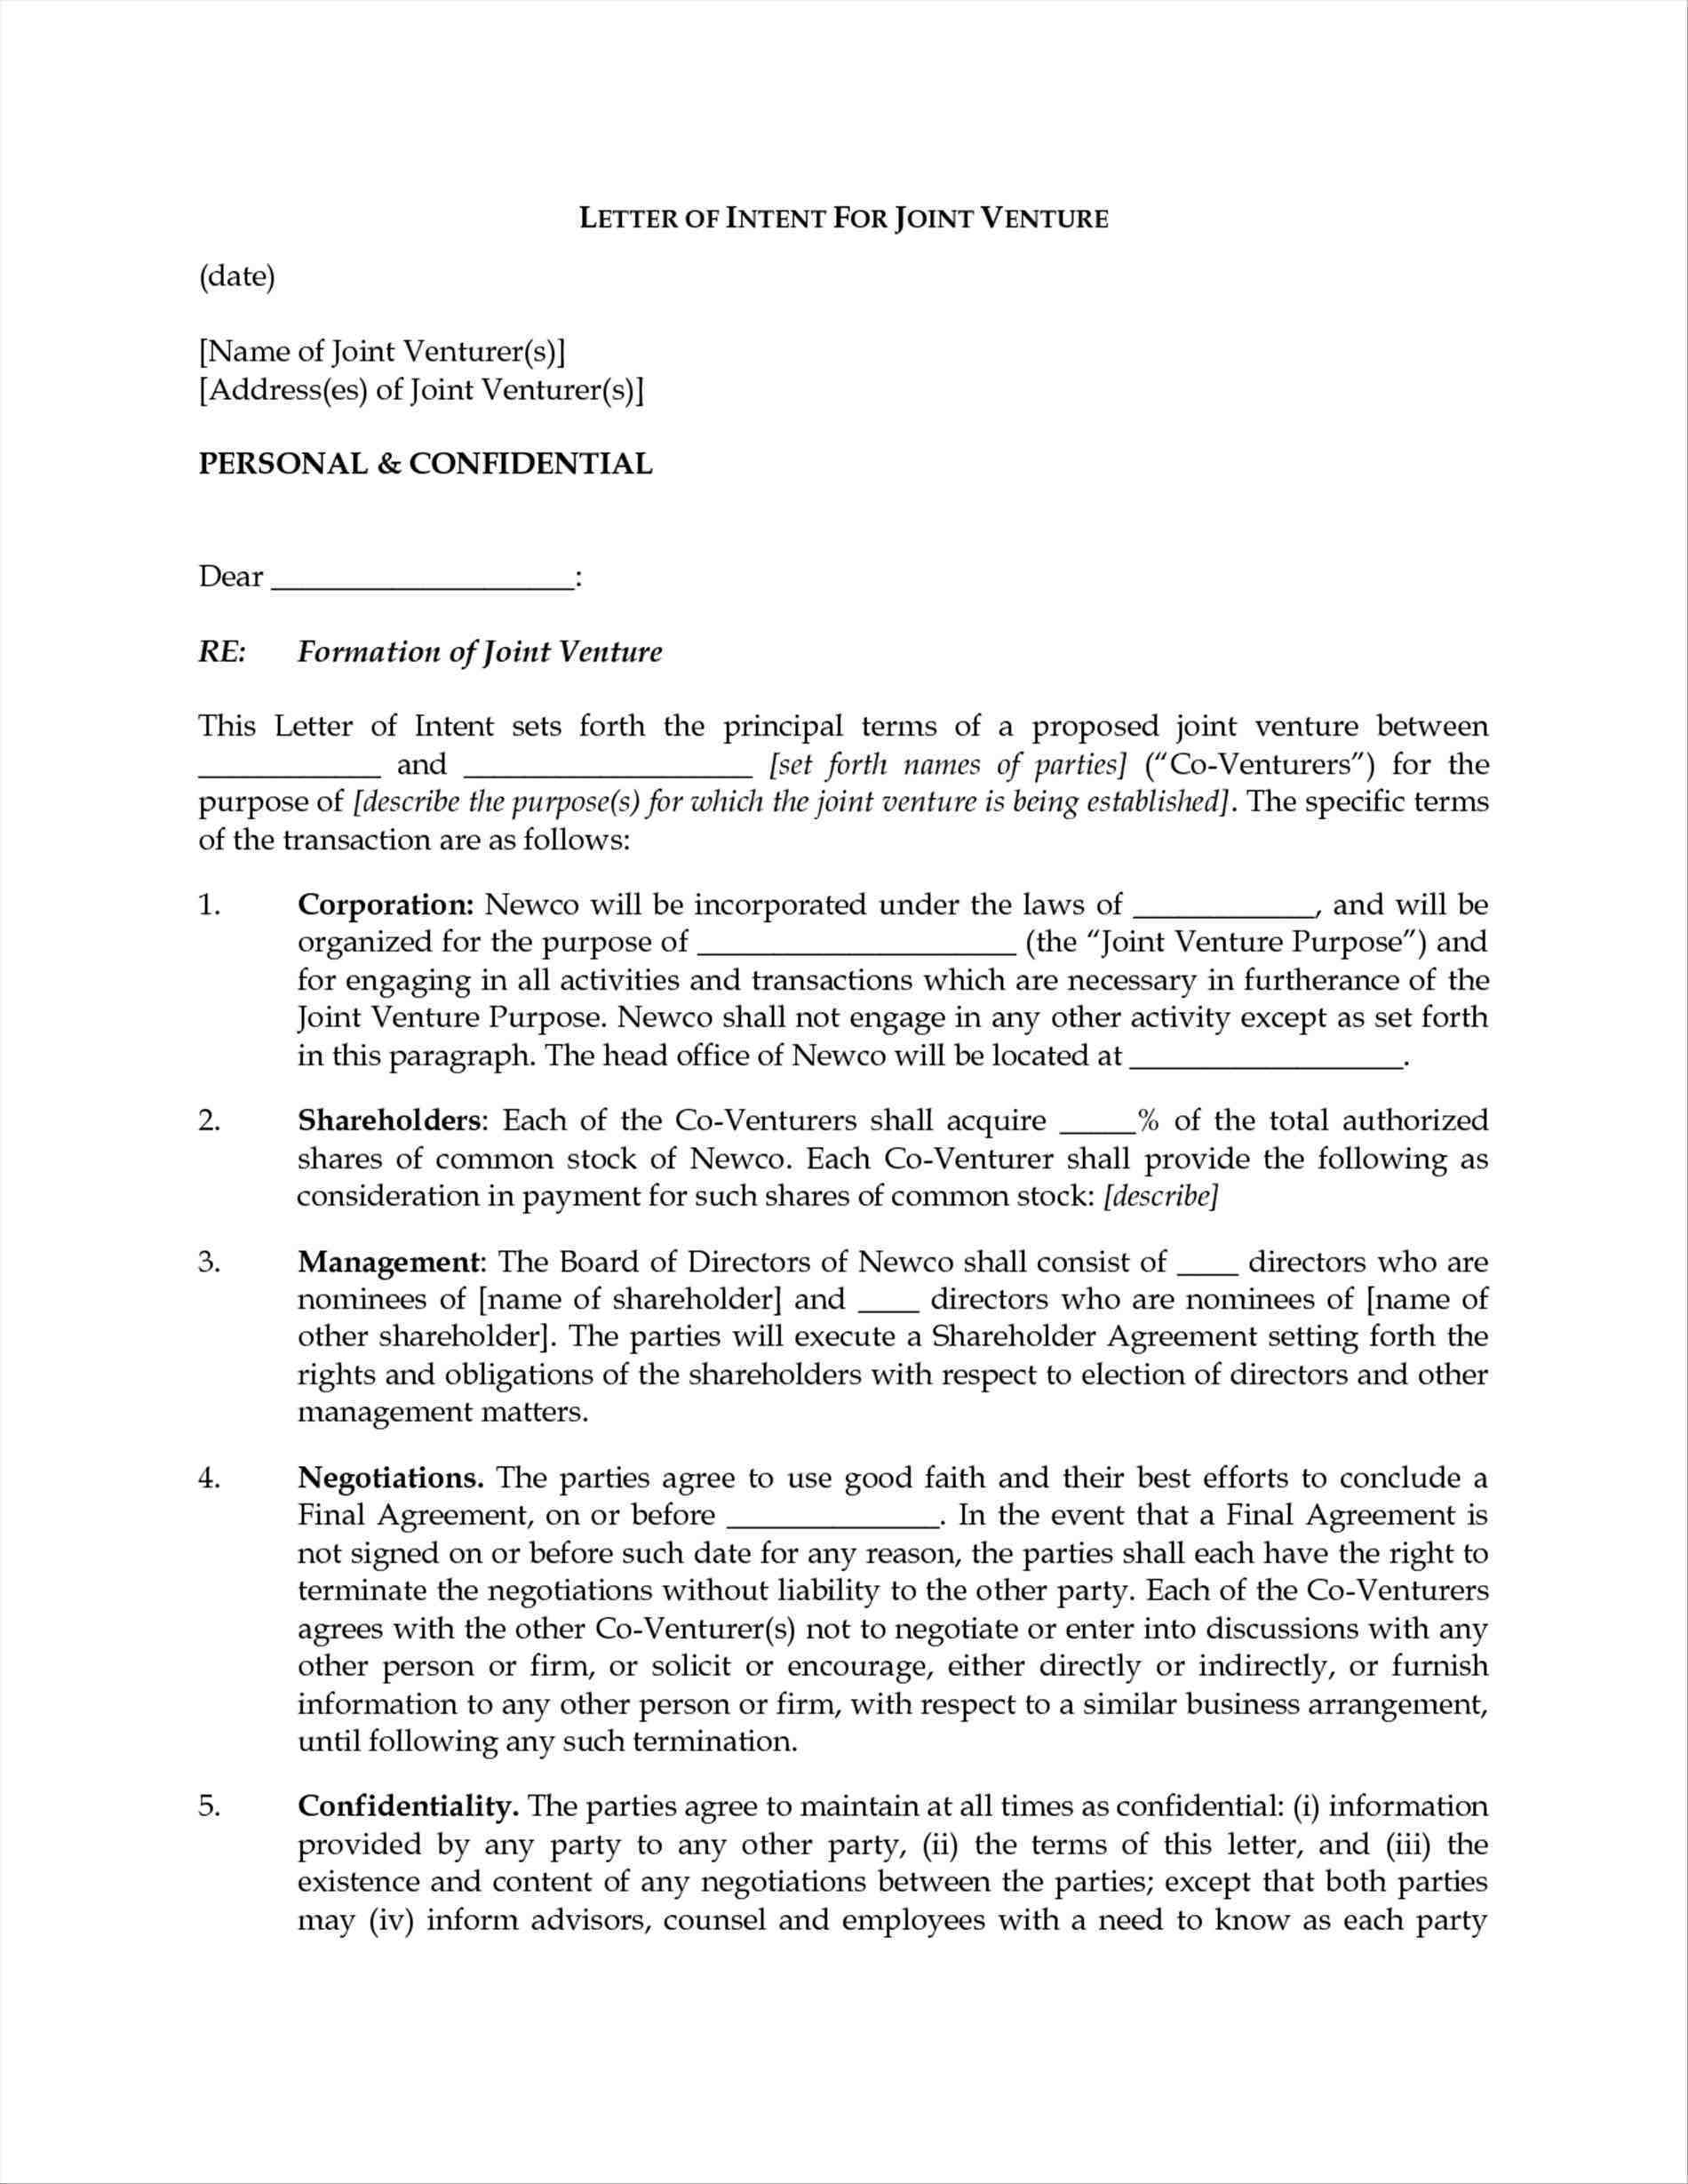 joint venture letter of intent template Collection-letter of intent form 7-q